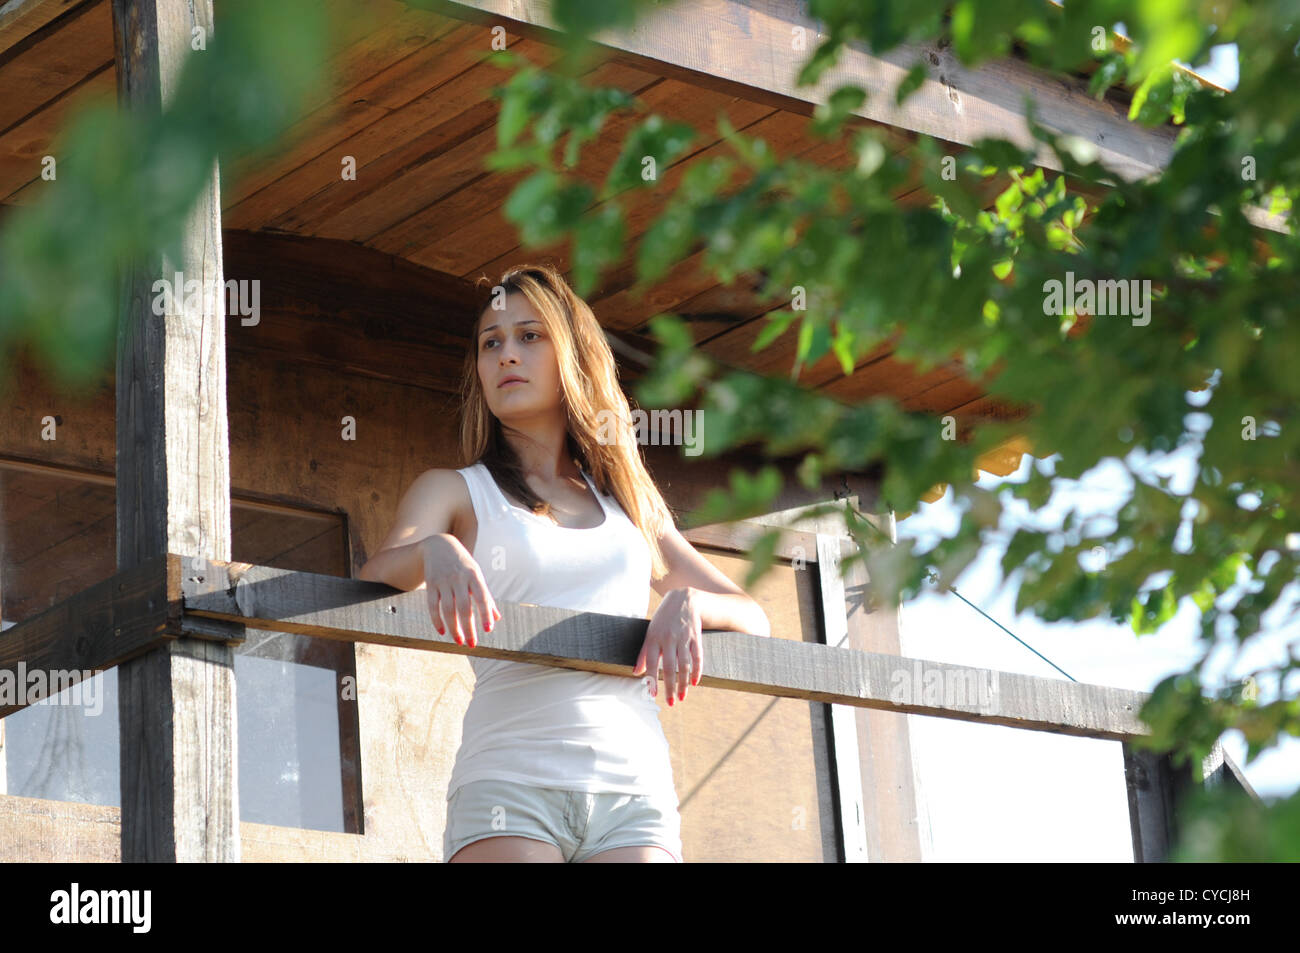 Woman on the balcony of a wooden house. - Stock Image